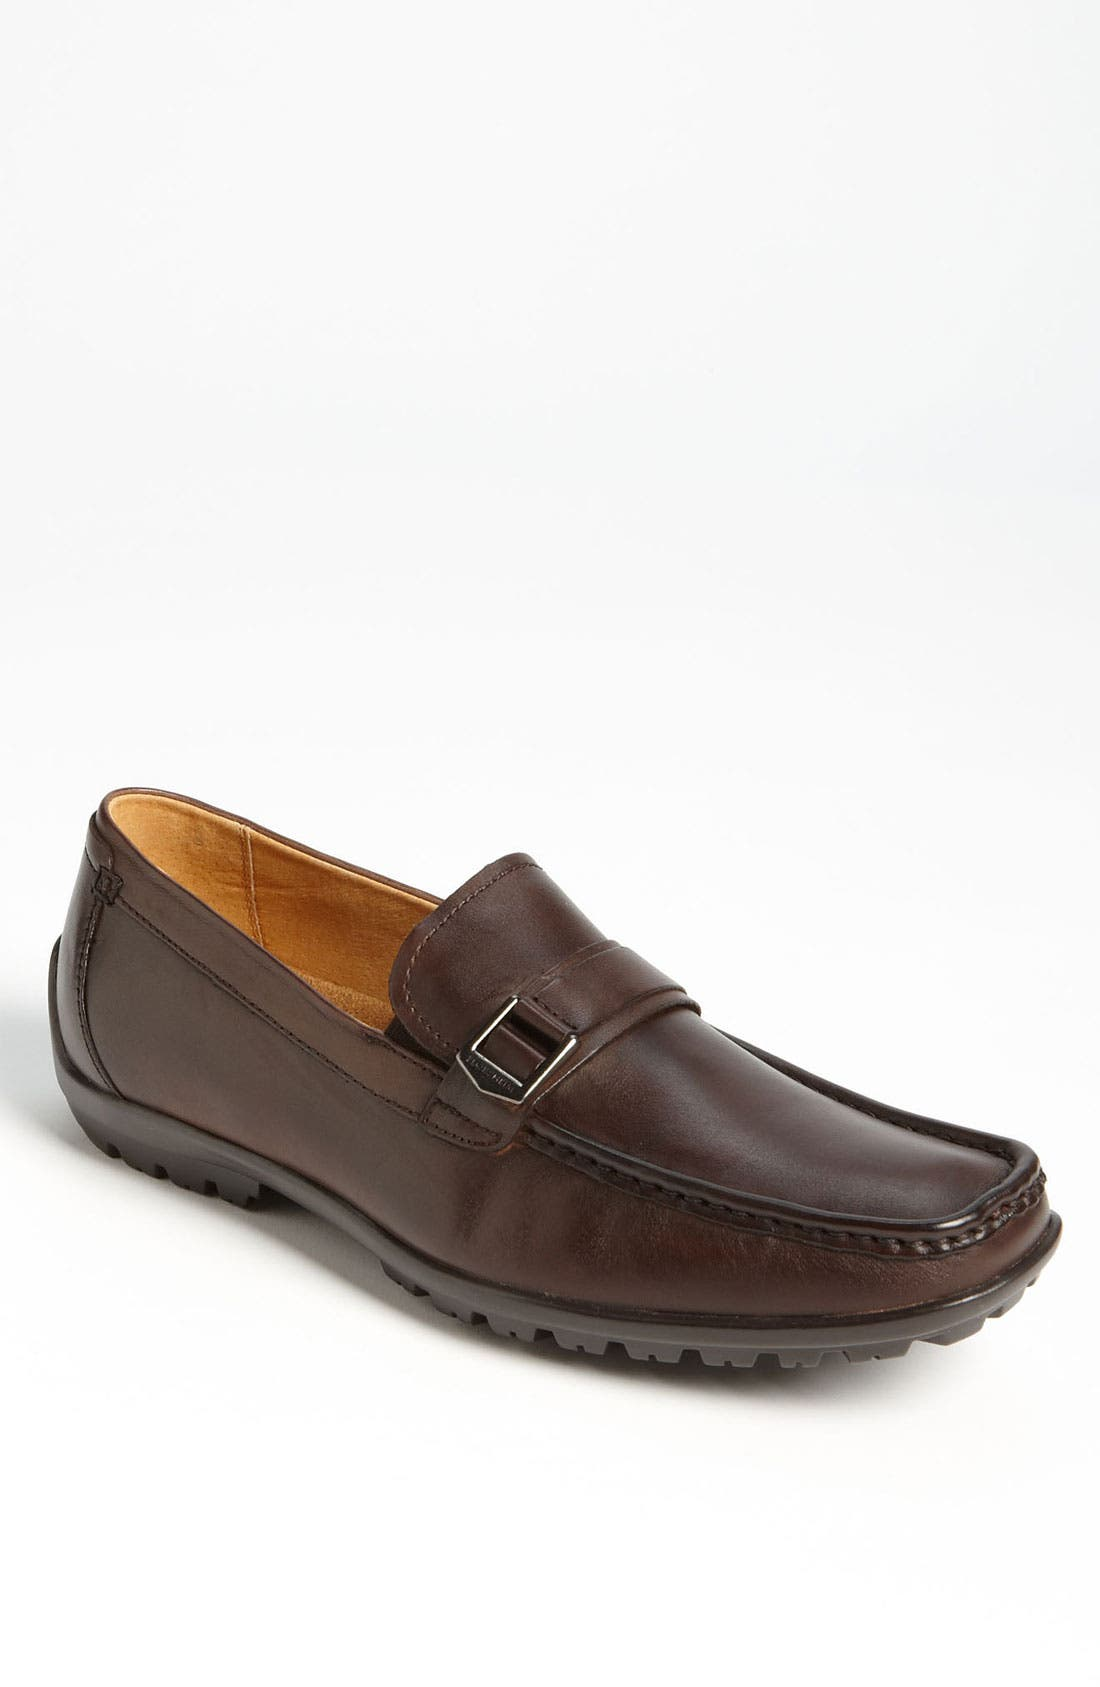 Alternate Image 1 Selected - Florsheim 'Nowles' Loafer